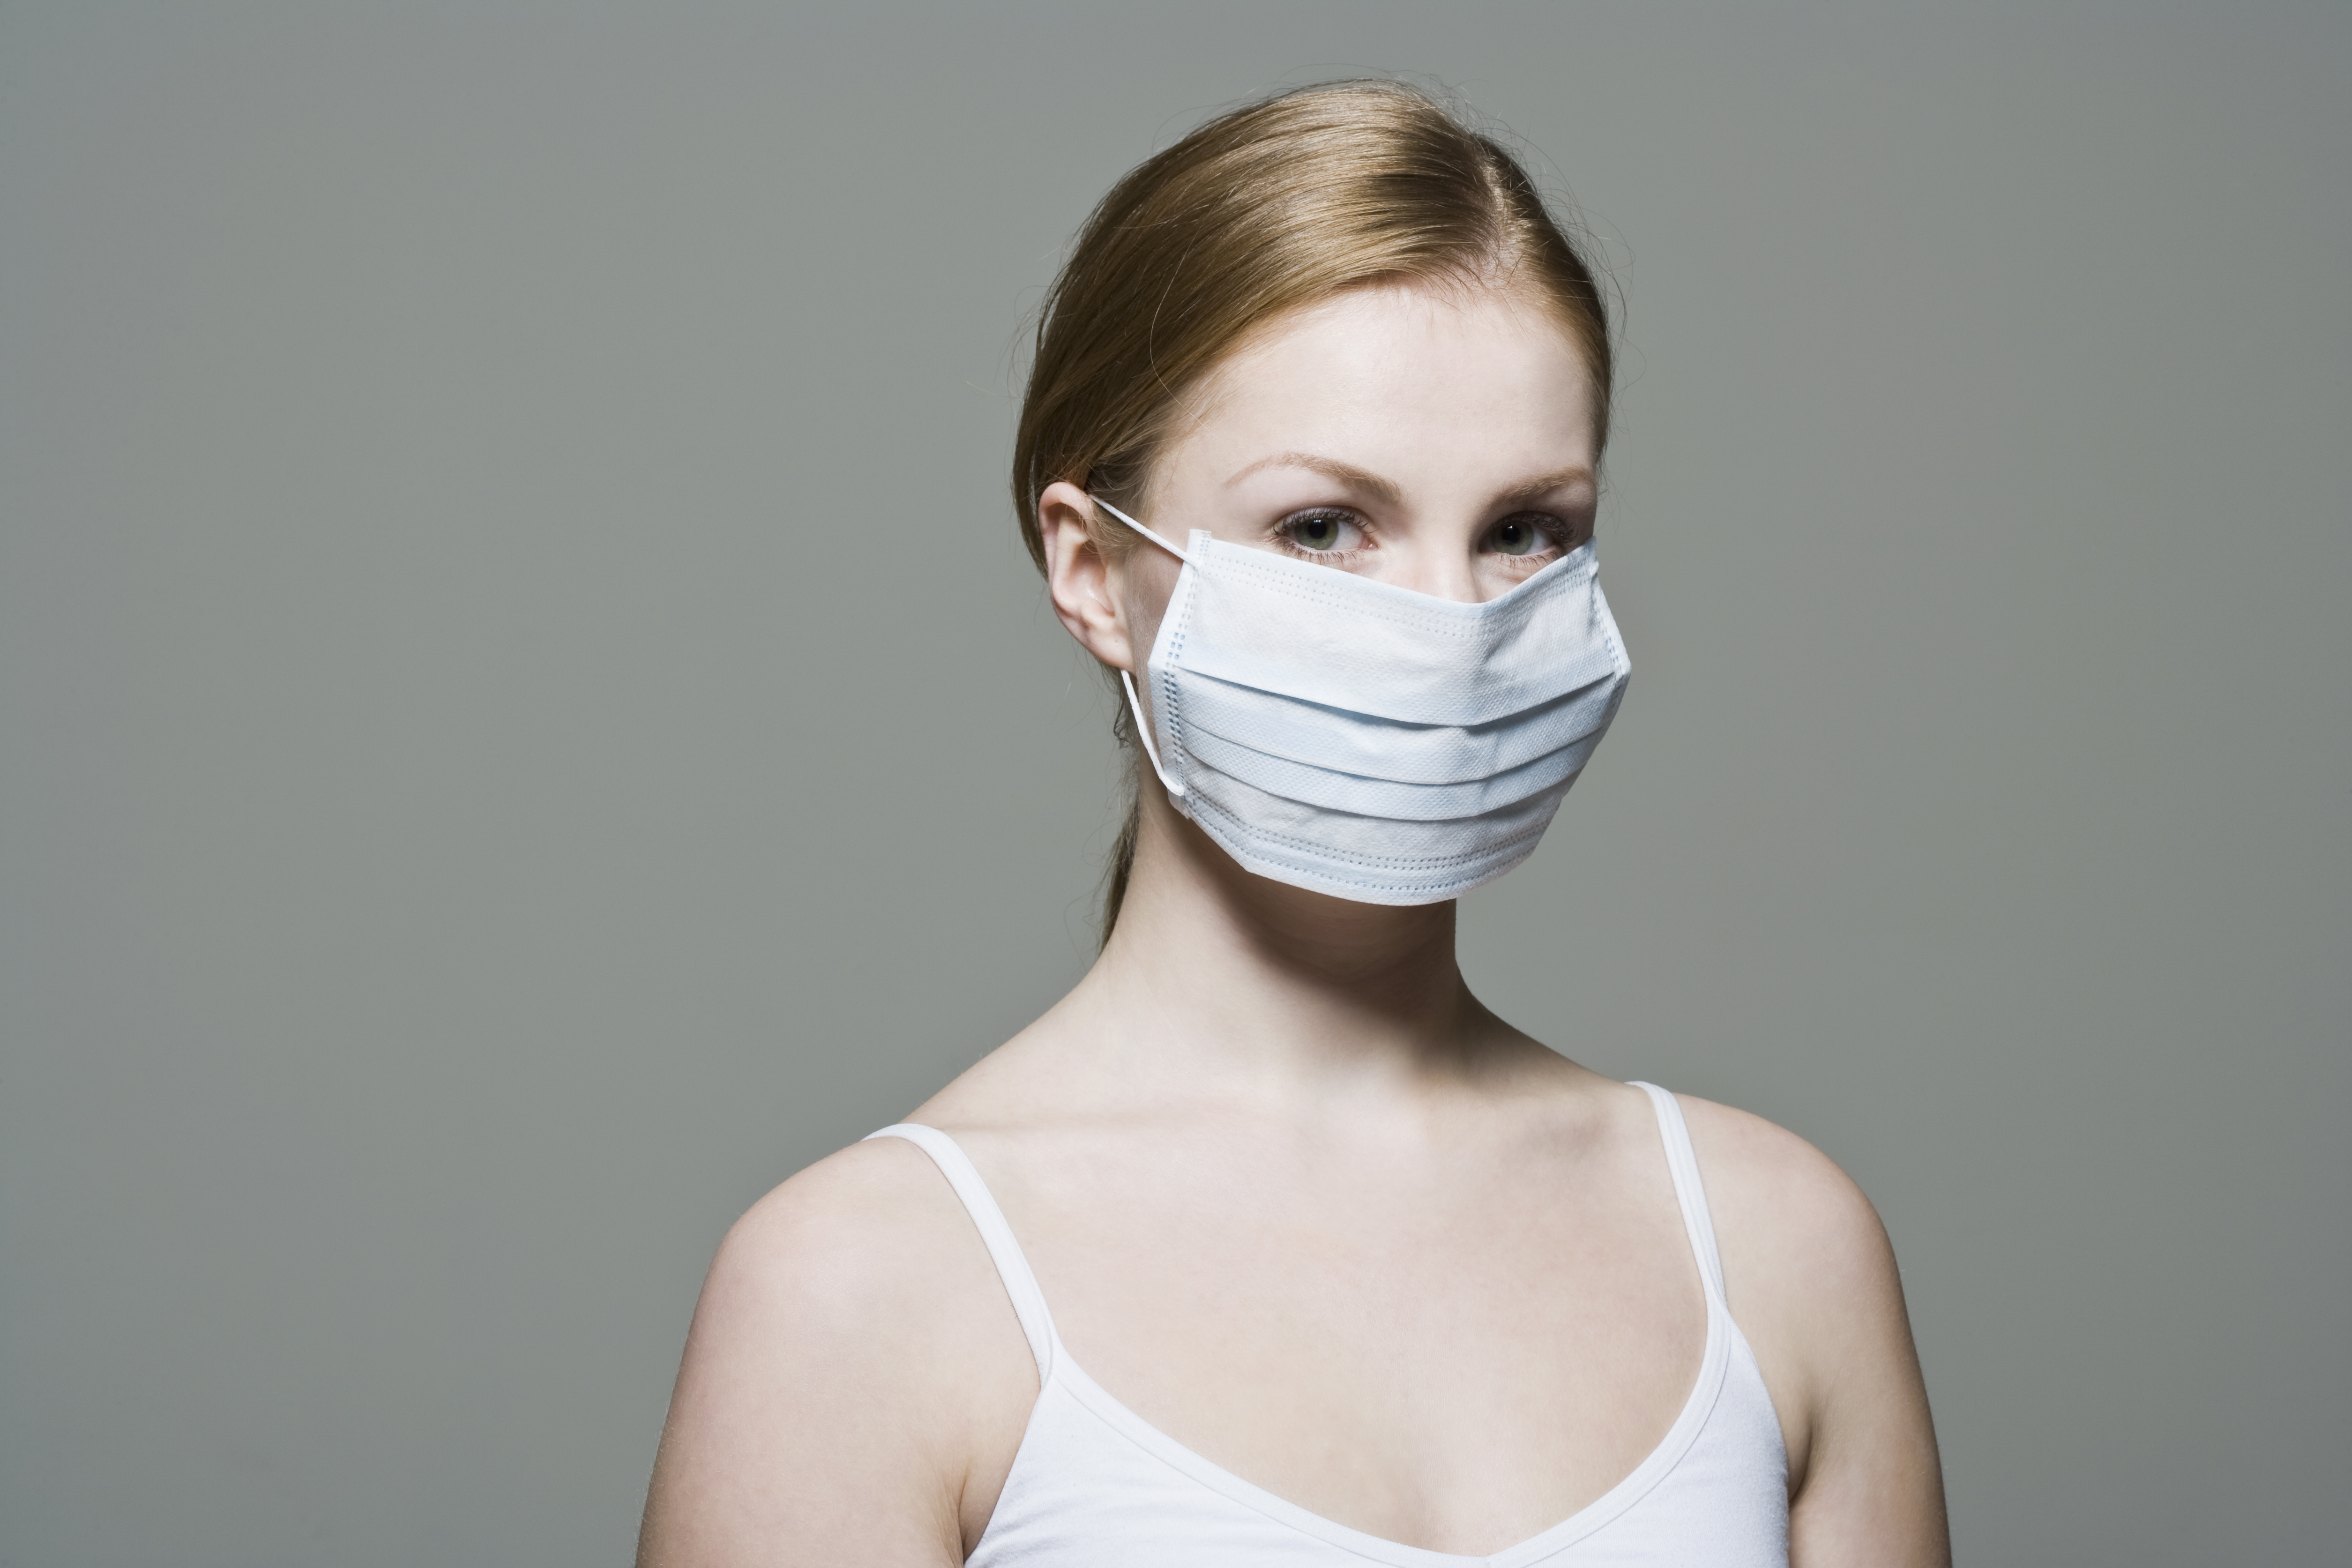 A woman wears a disposable dust mask.